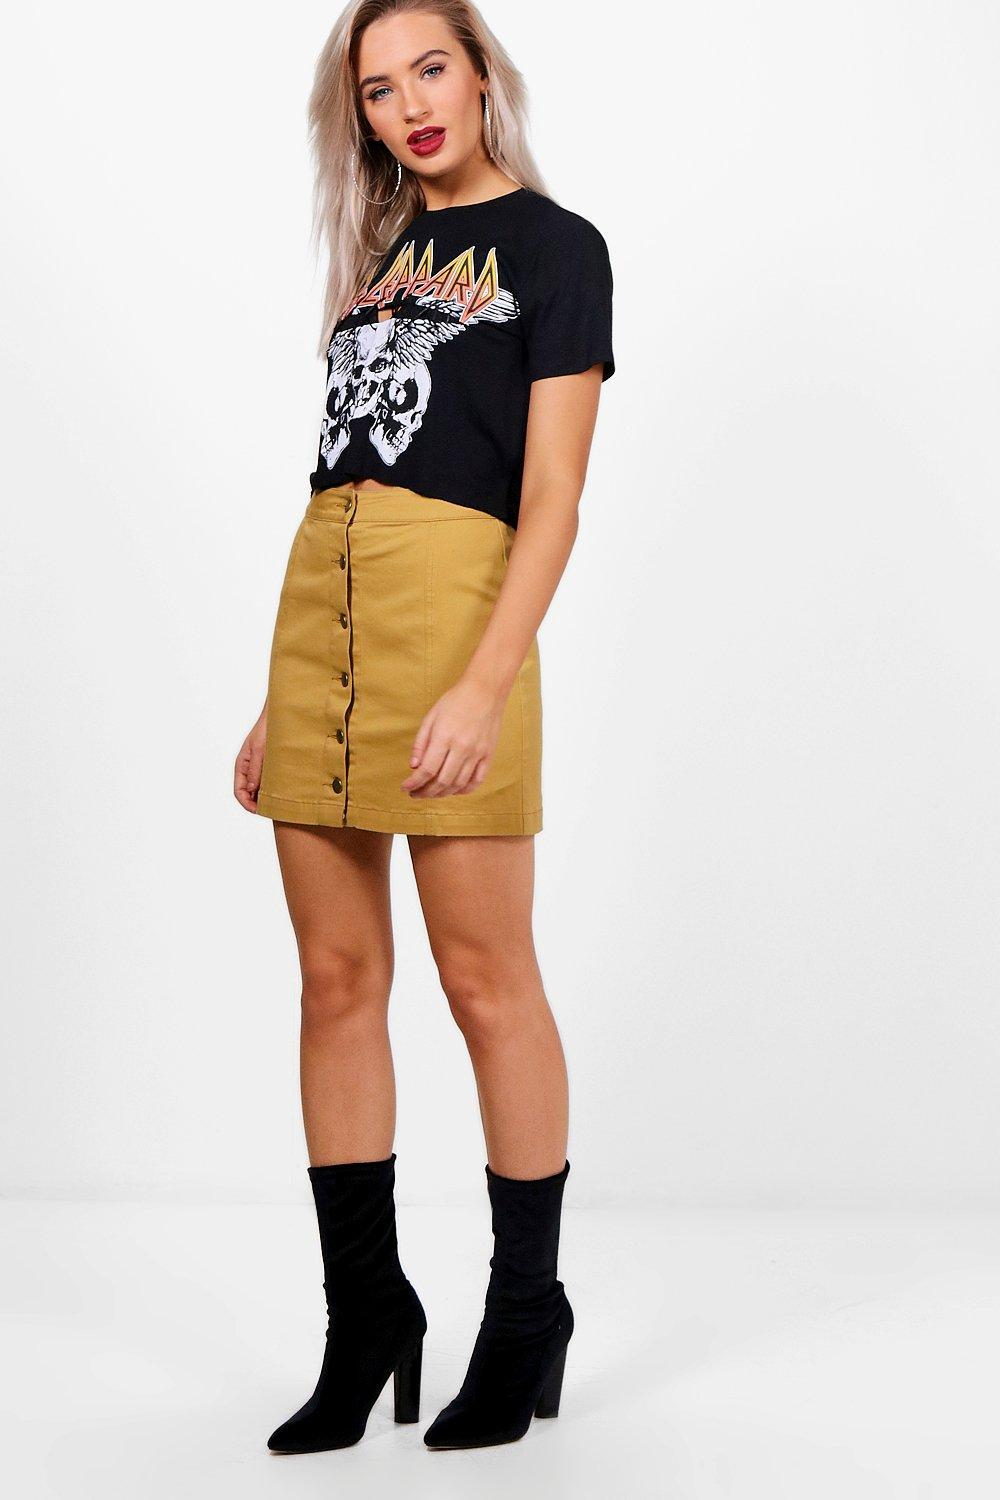 Boohoo Mustard Denim Mini Skirt Where To Buy Cheap Real Buy Cheap For Nice Perfect For Sale duAUI